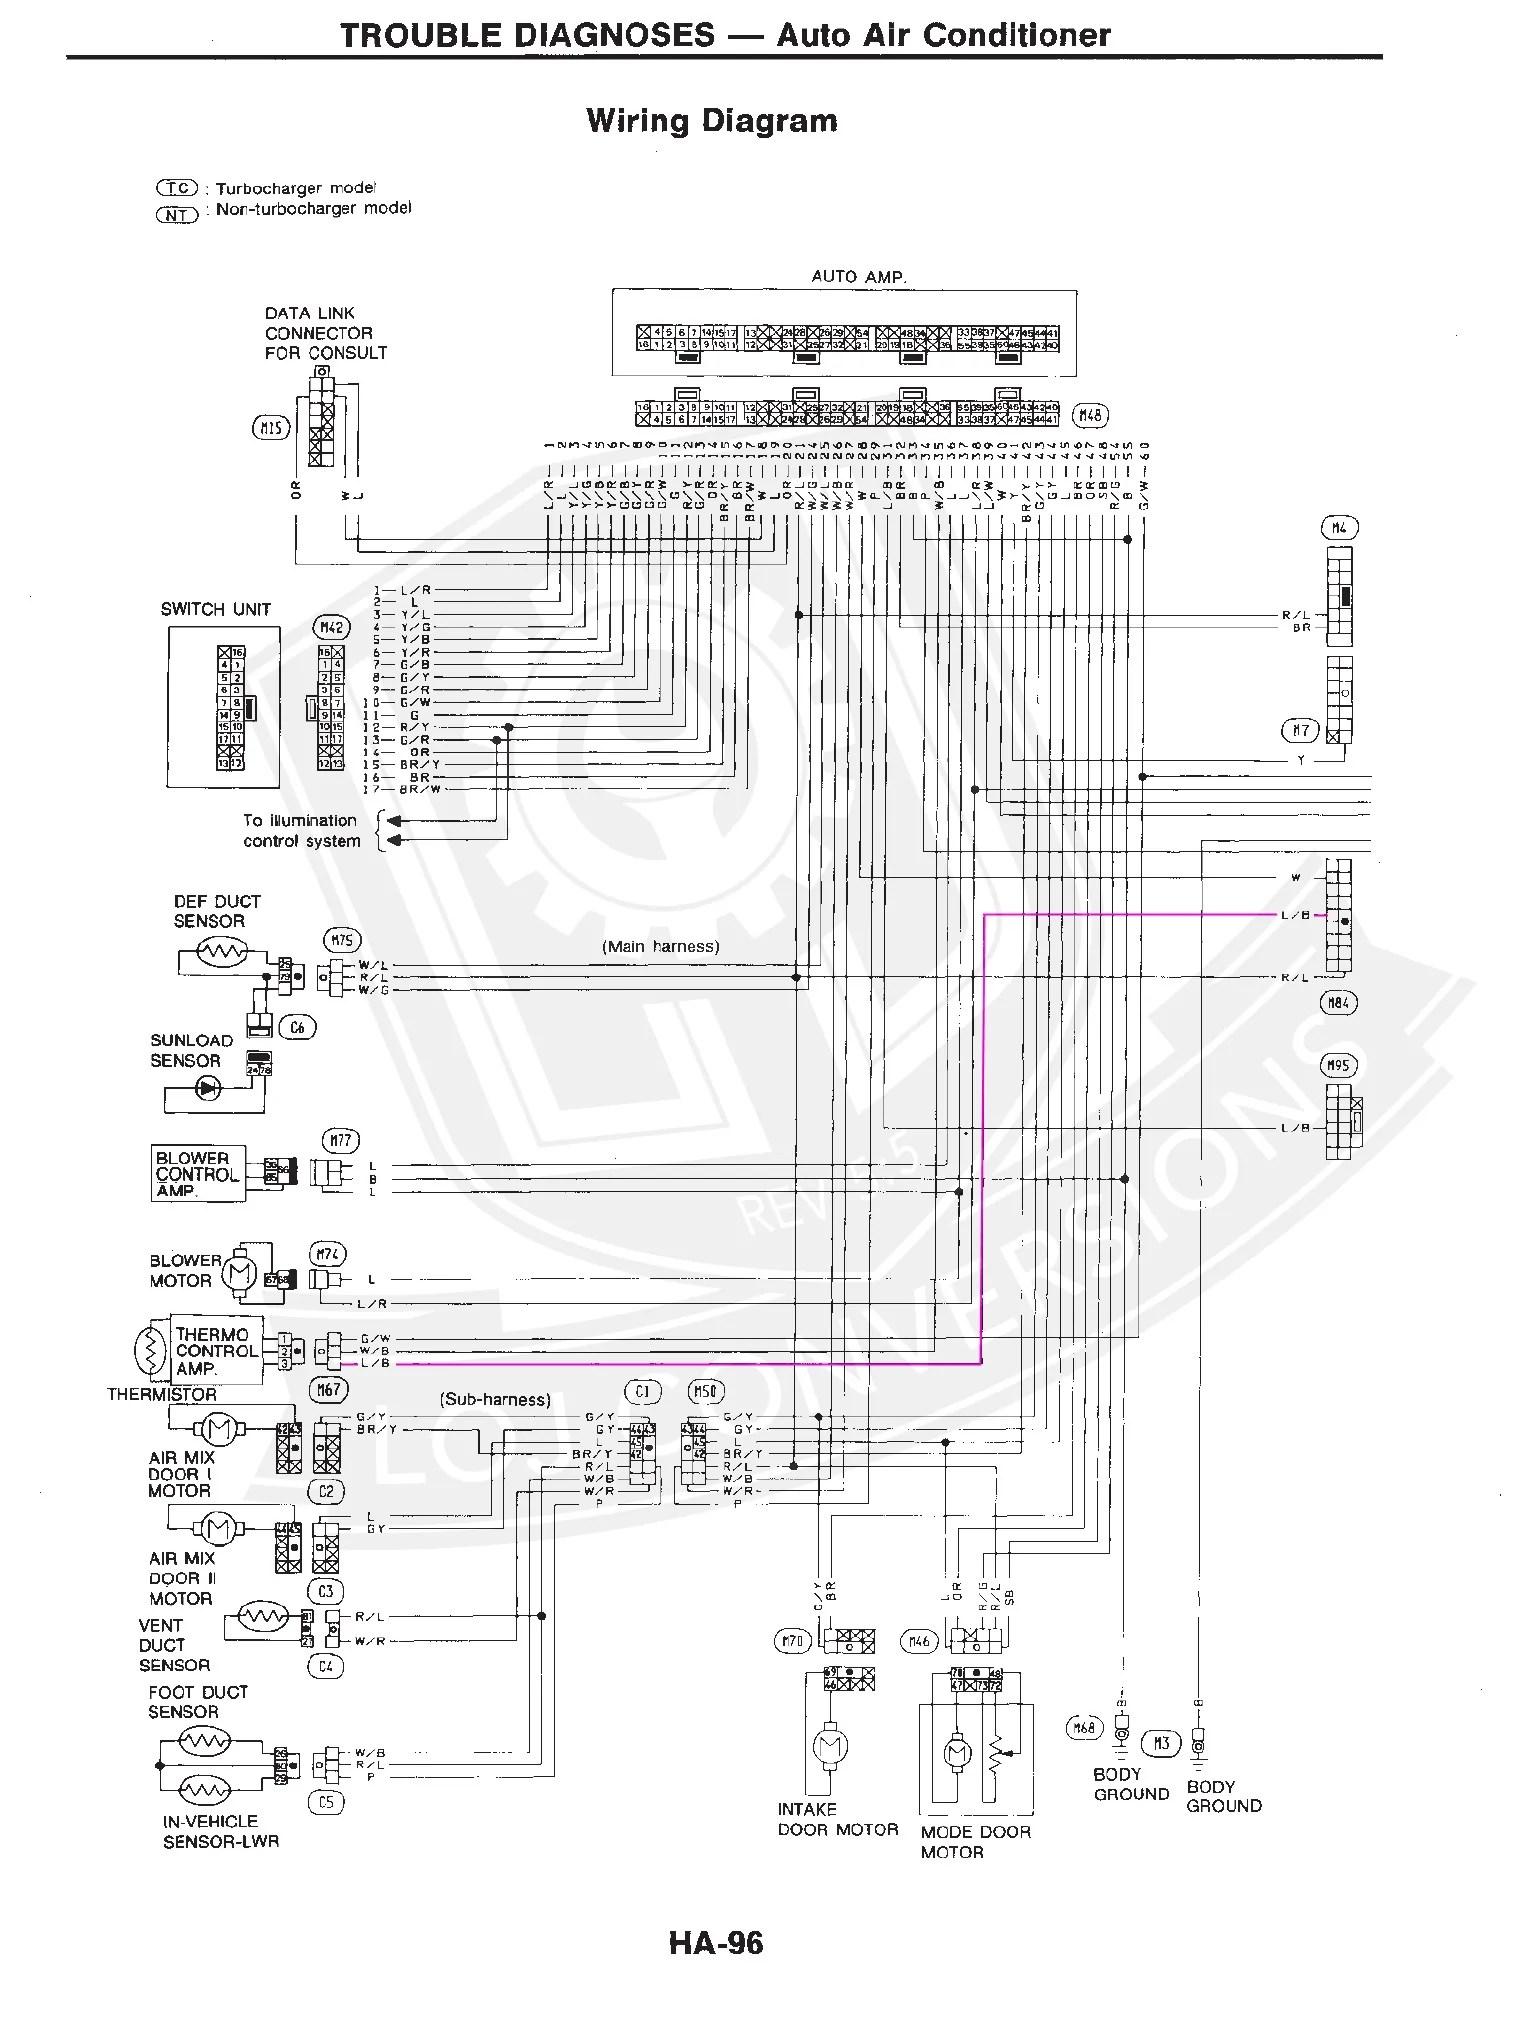 medium resolution of wiring diagram also 1990 nissan 300zx engine wiring harness further 1990 nissan 300zx wiring harness diagram